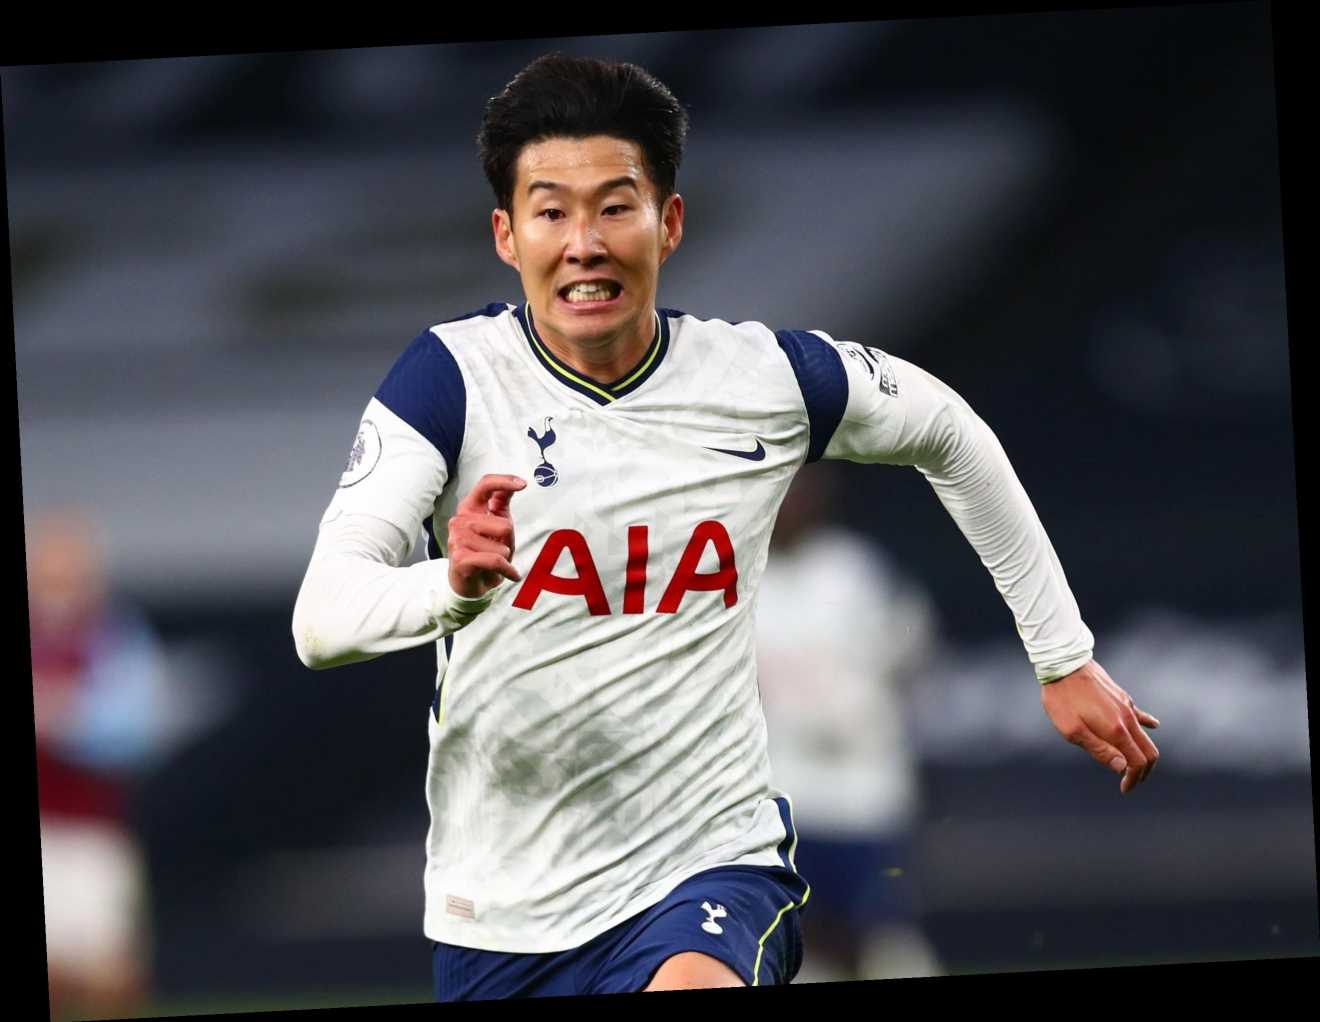 Tottenham 'offer Son Heung-min £200k-a-week contract' after Jose Mourinho plea